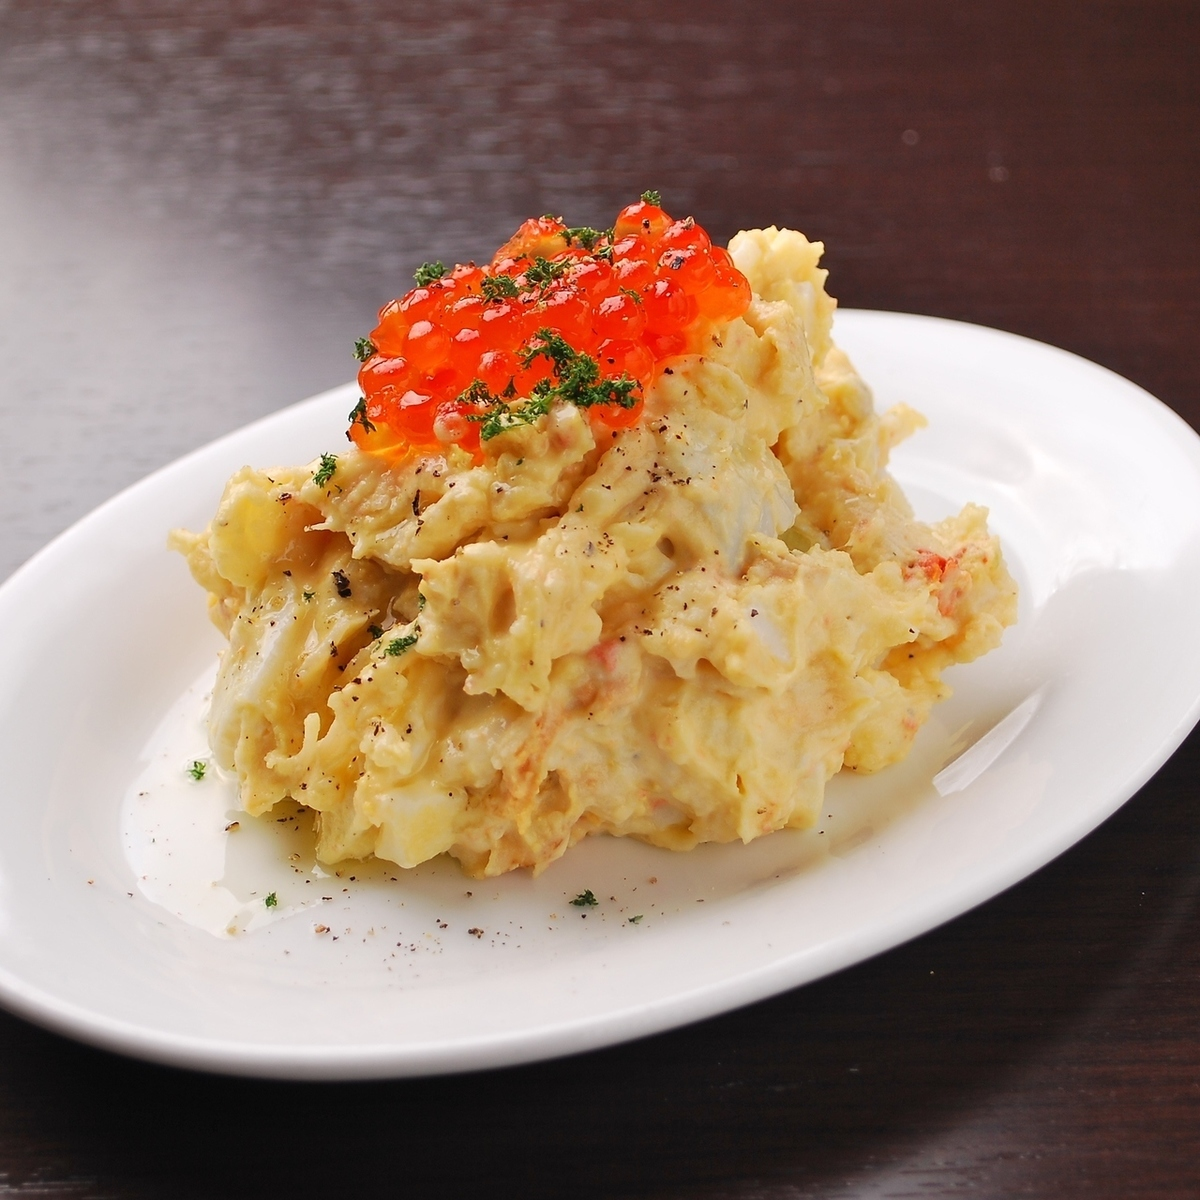 Ikura and scallops with potato salad